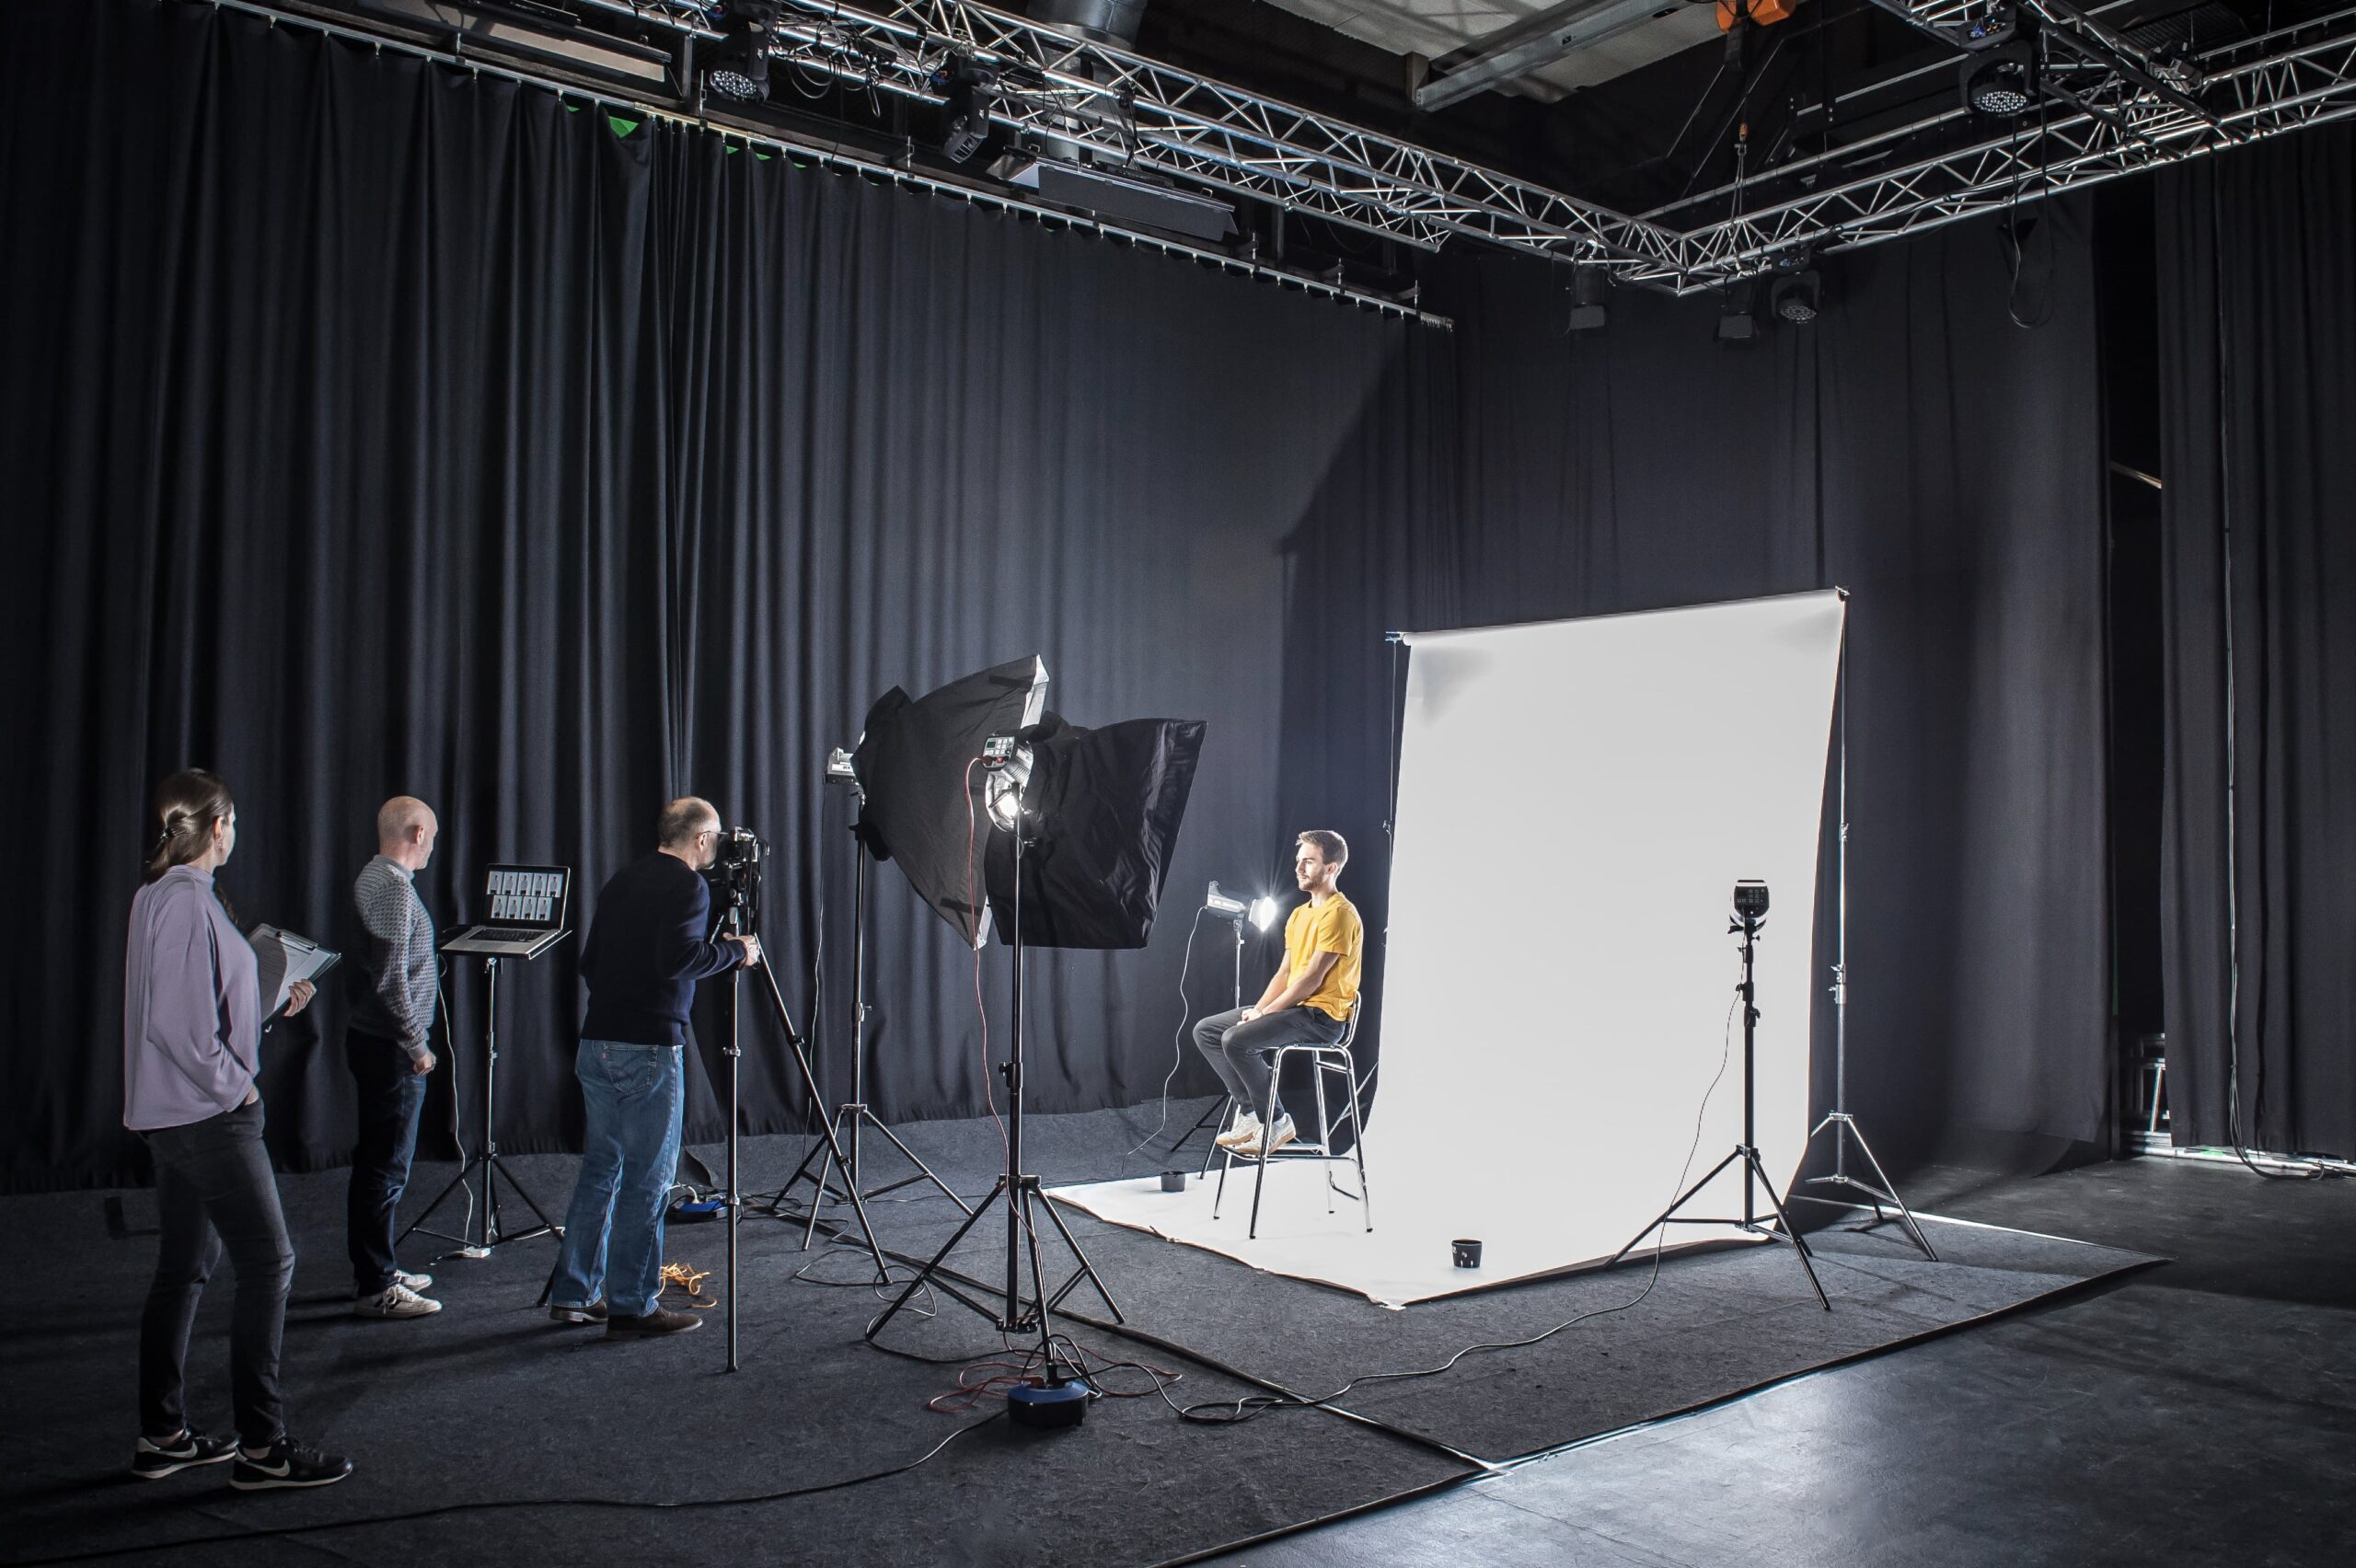 Picture of the Beehived Media team working in the video studio